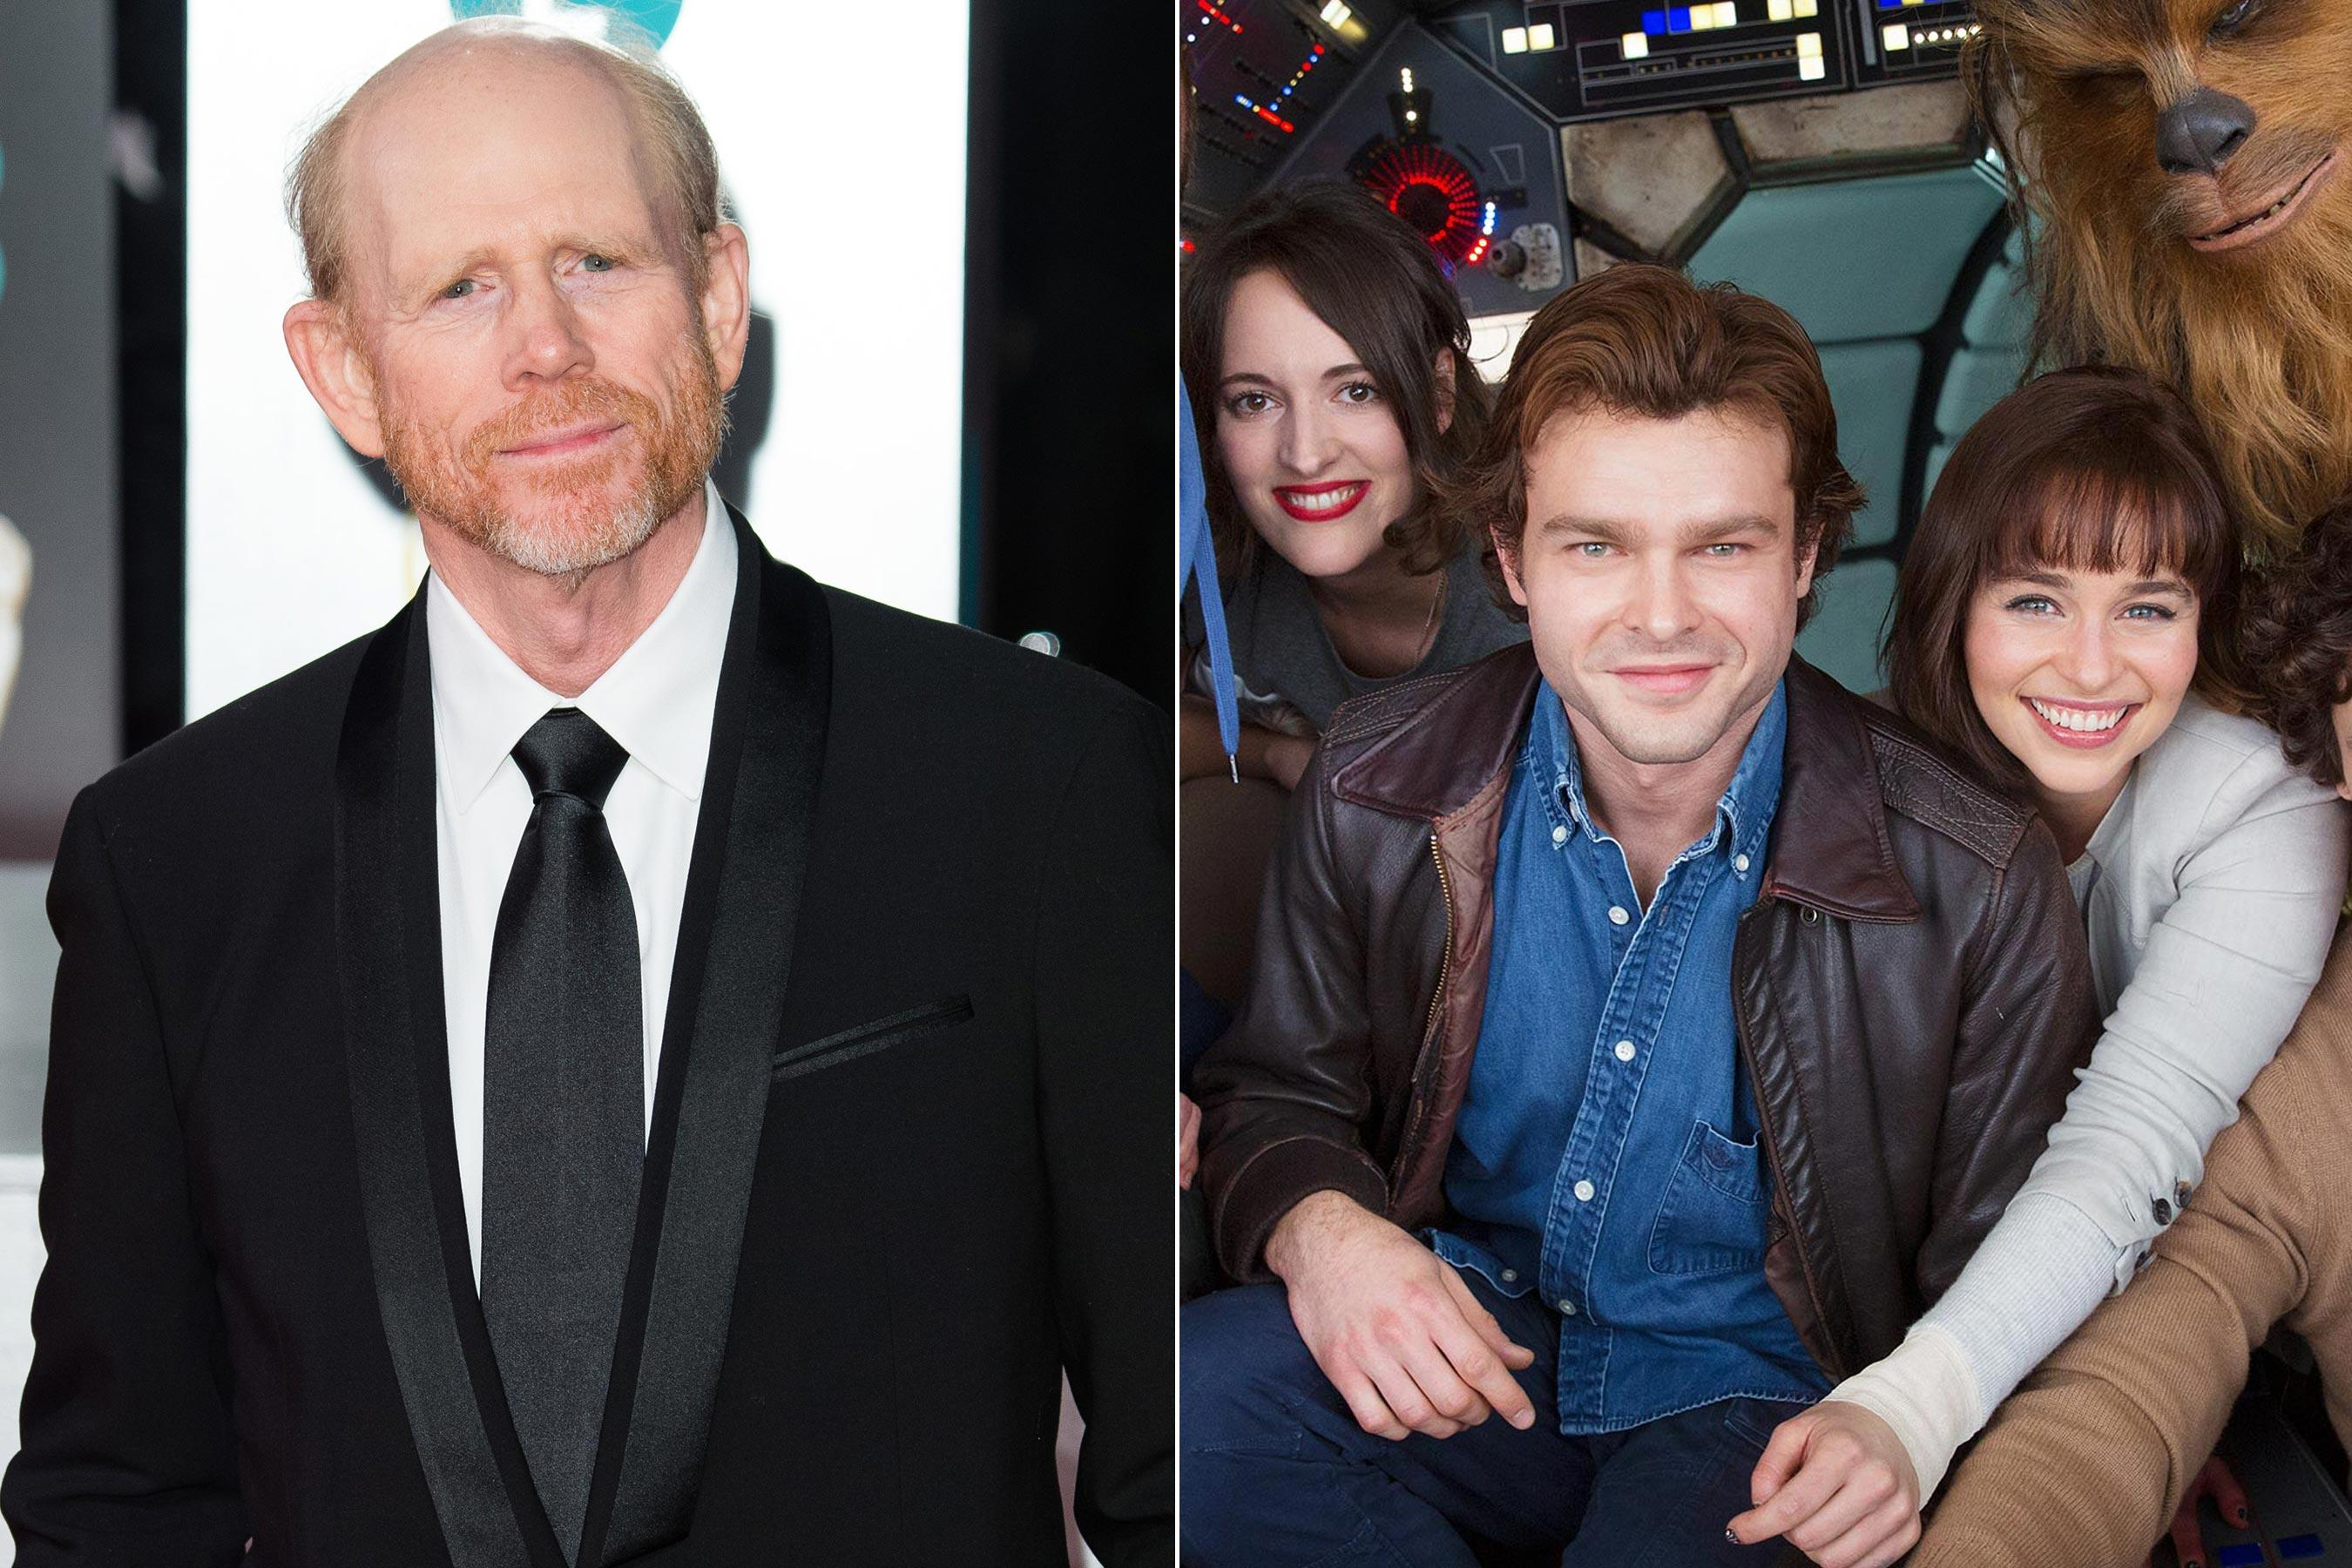 Ron Howard comments on Han Solo directing job: 'Beyond grateful'